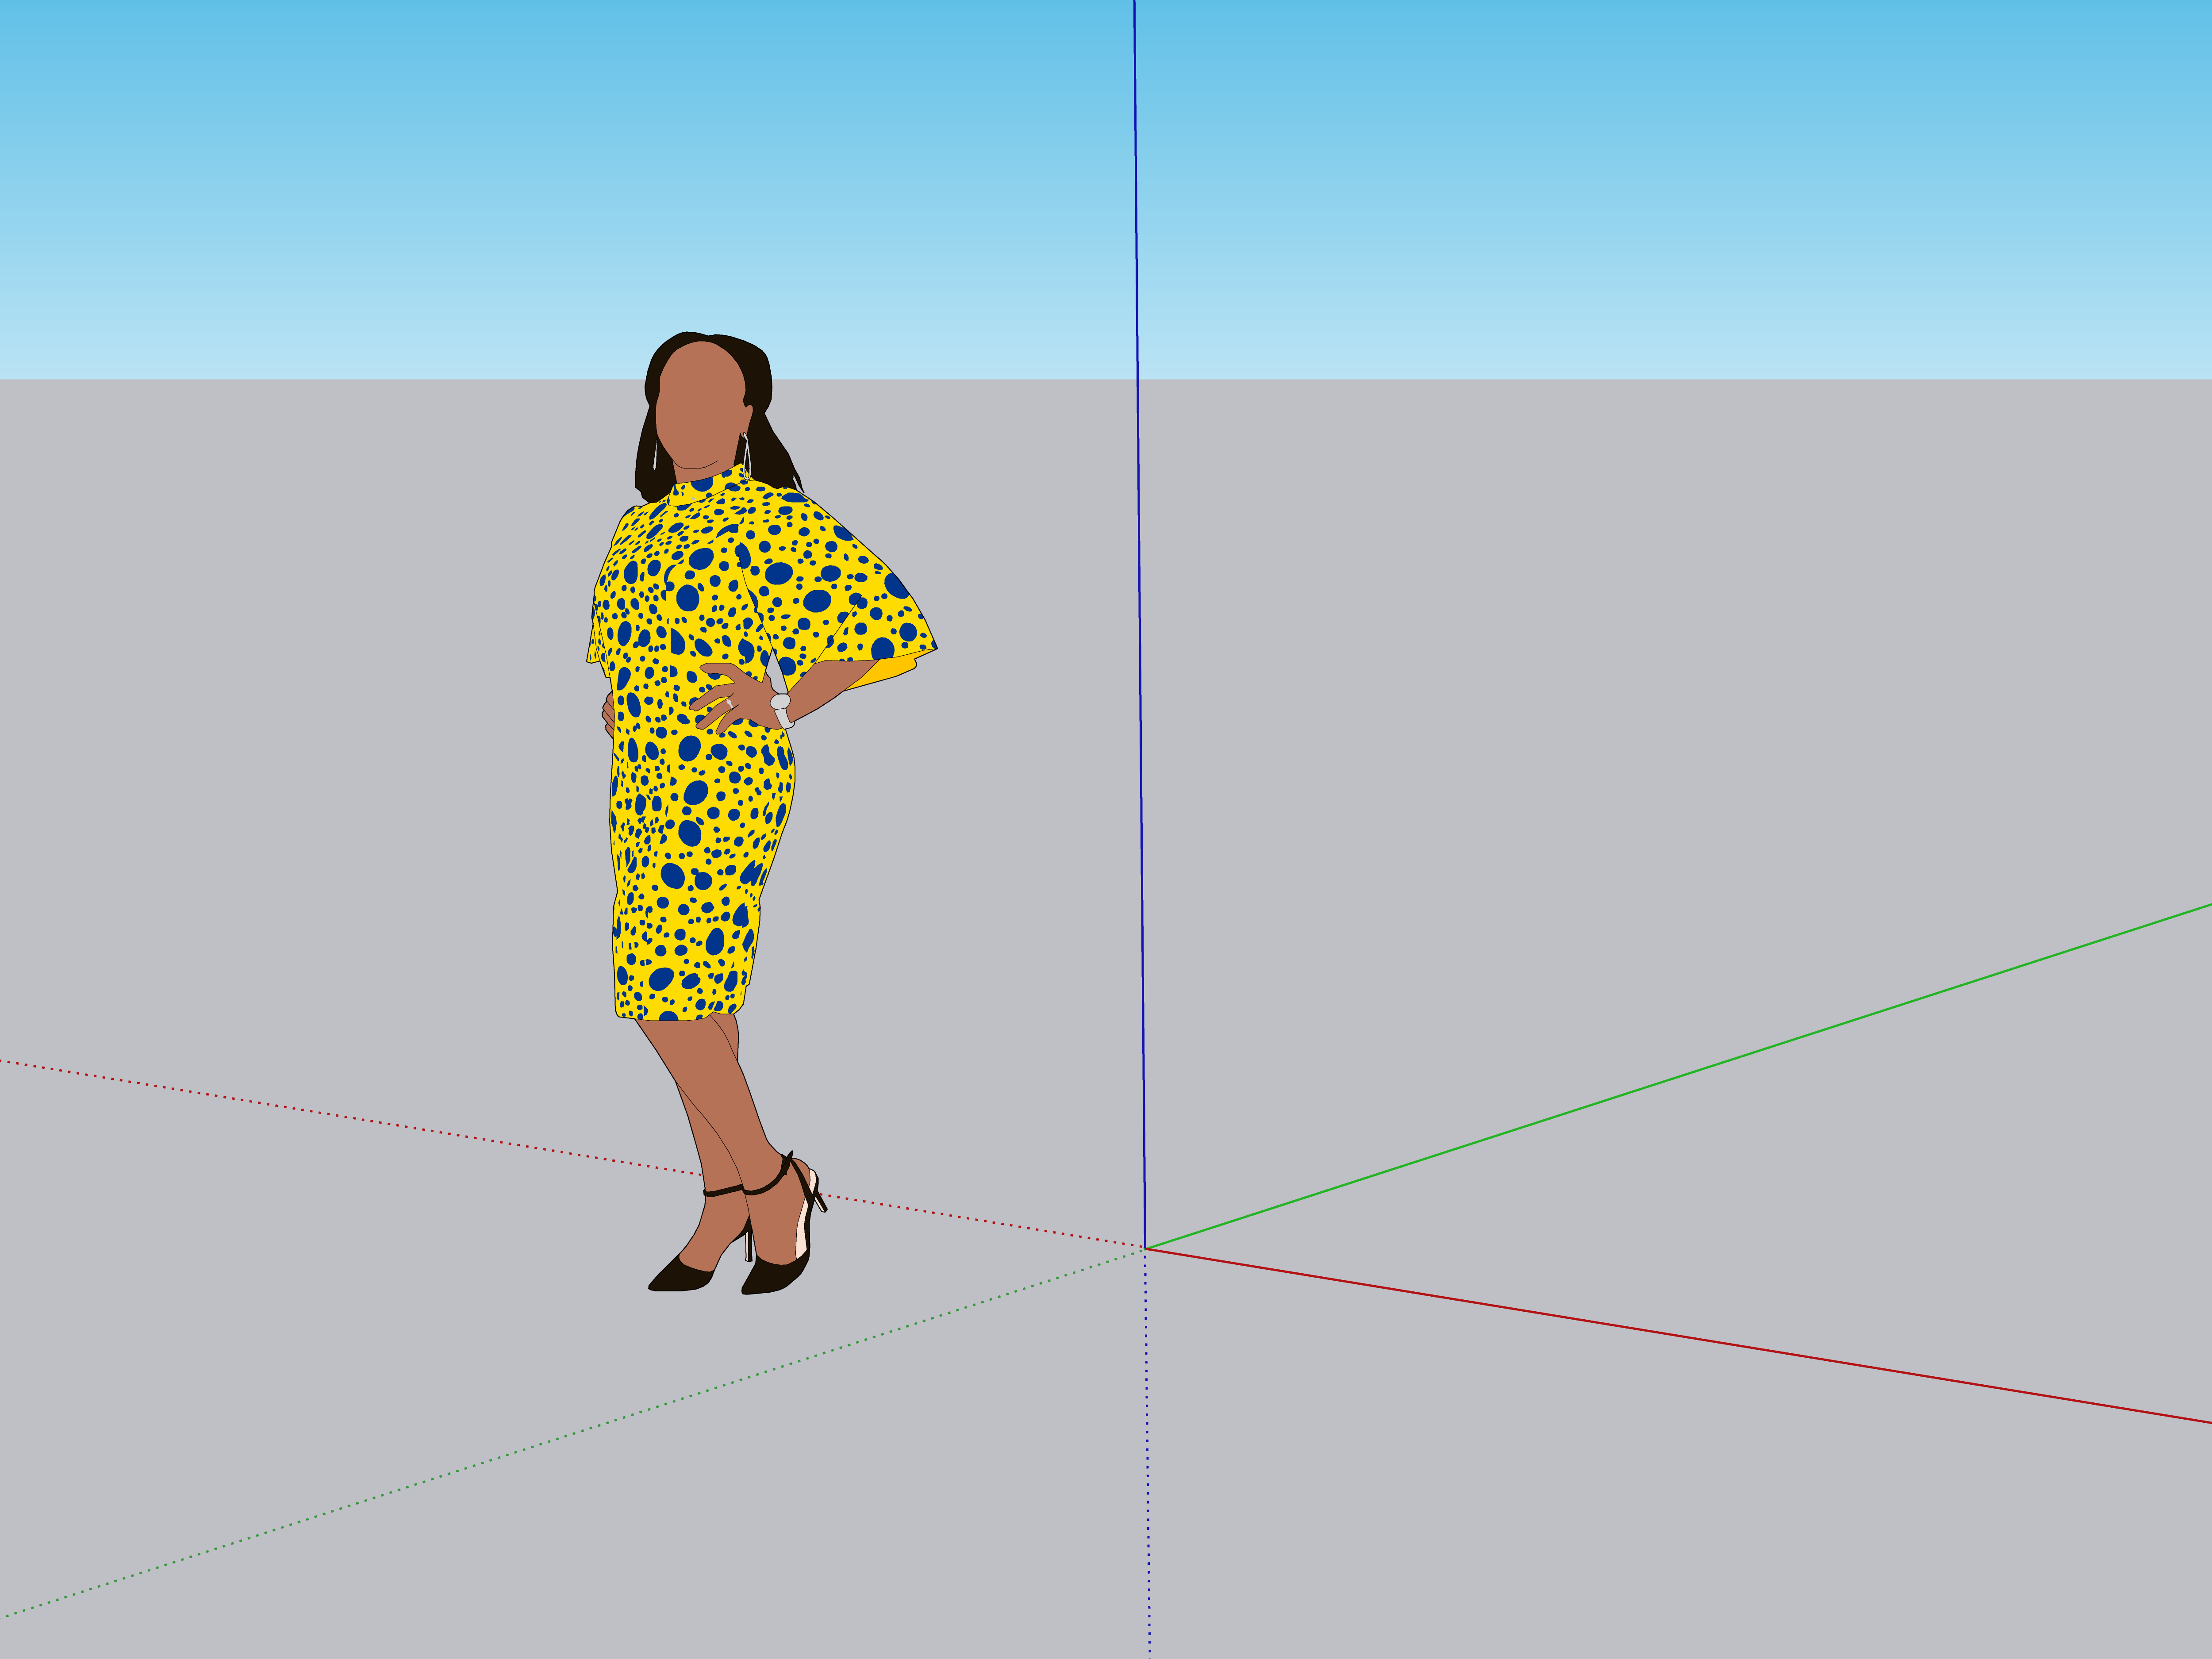 SketchUp's new scale figure